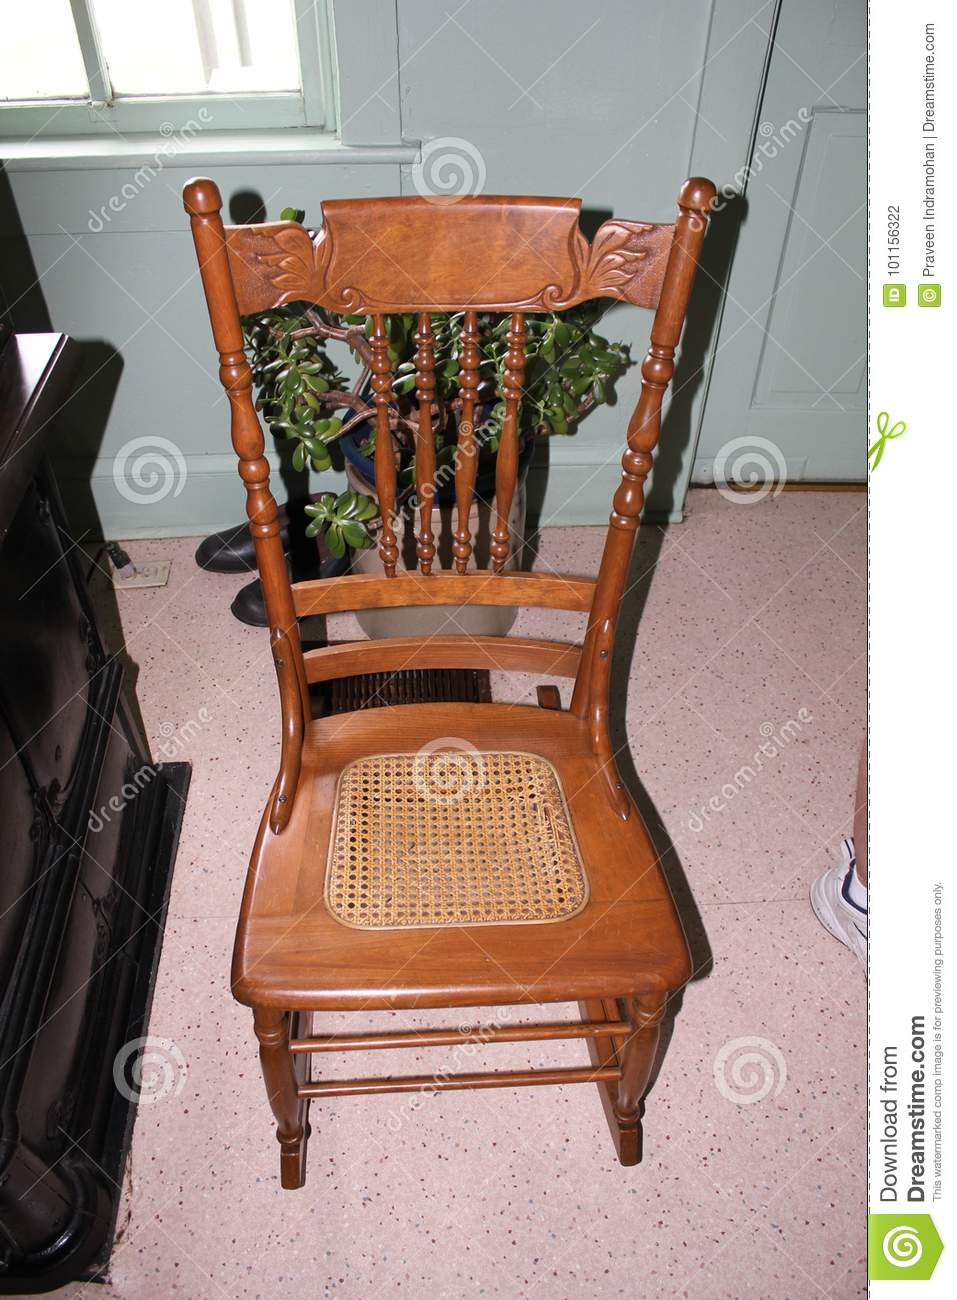 Traditional Wooden Furniture Of Amish House